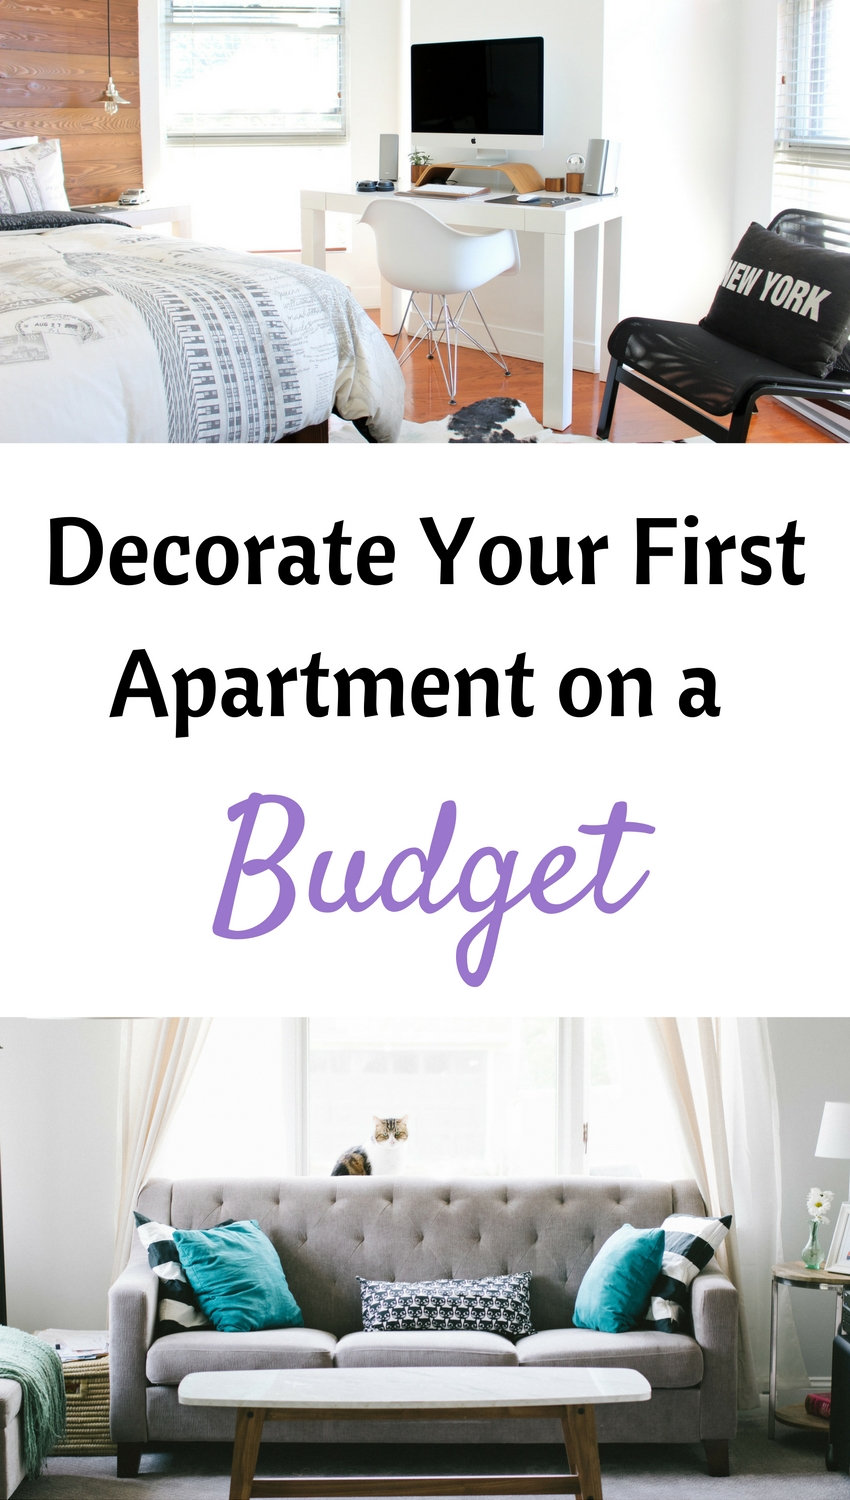 Decorating My Apartment Living Room: How To Decorate Your First Apartment On A Budget